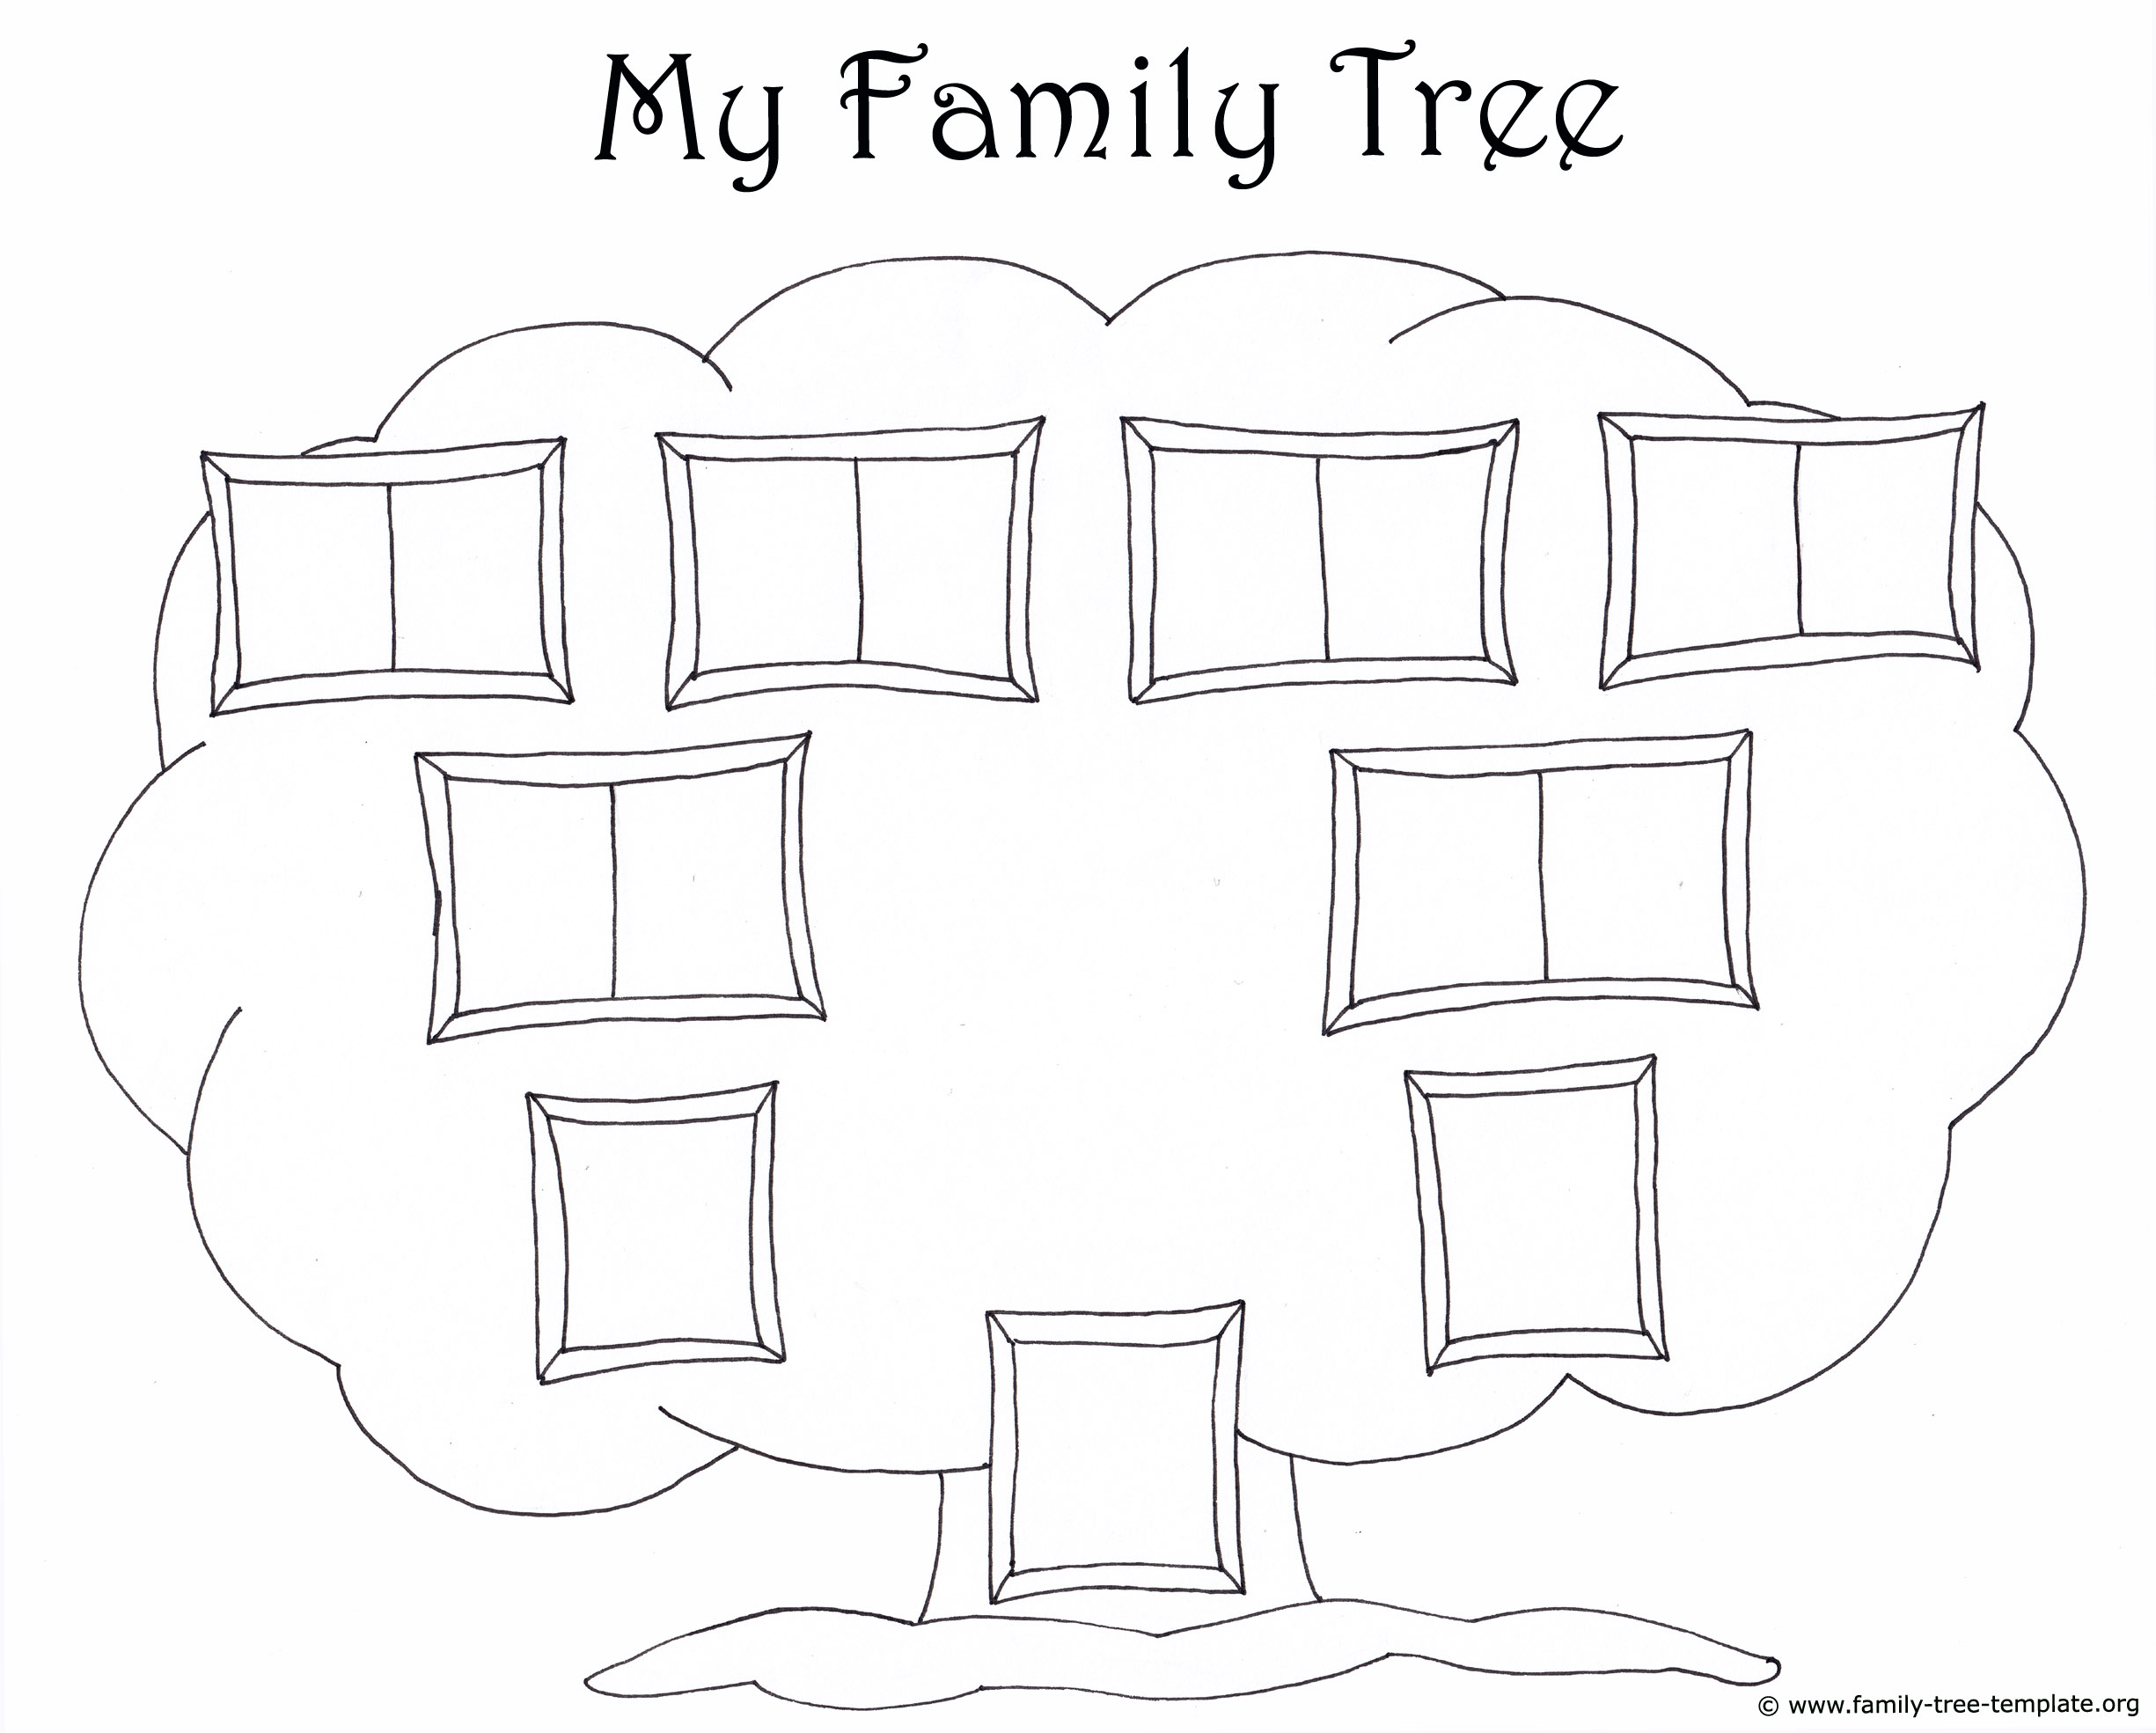 Family Tree Template for Kids: Printable Genealogy Charts